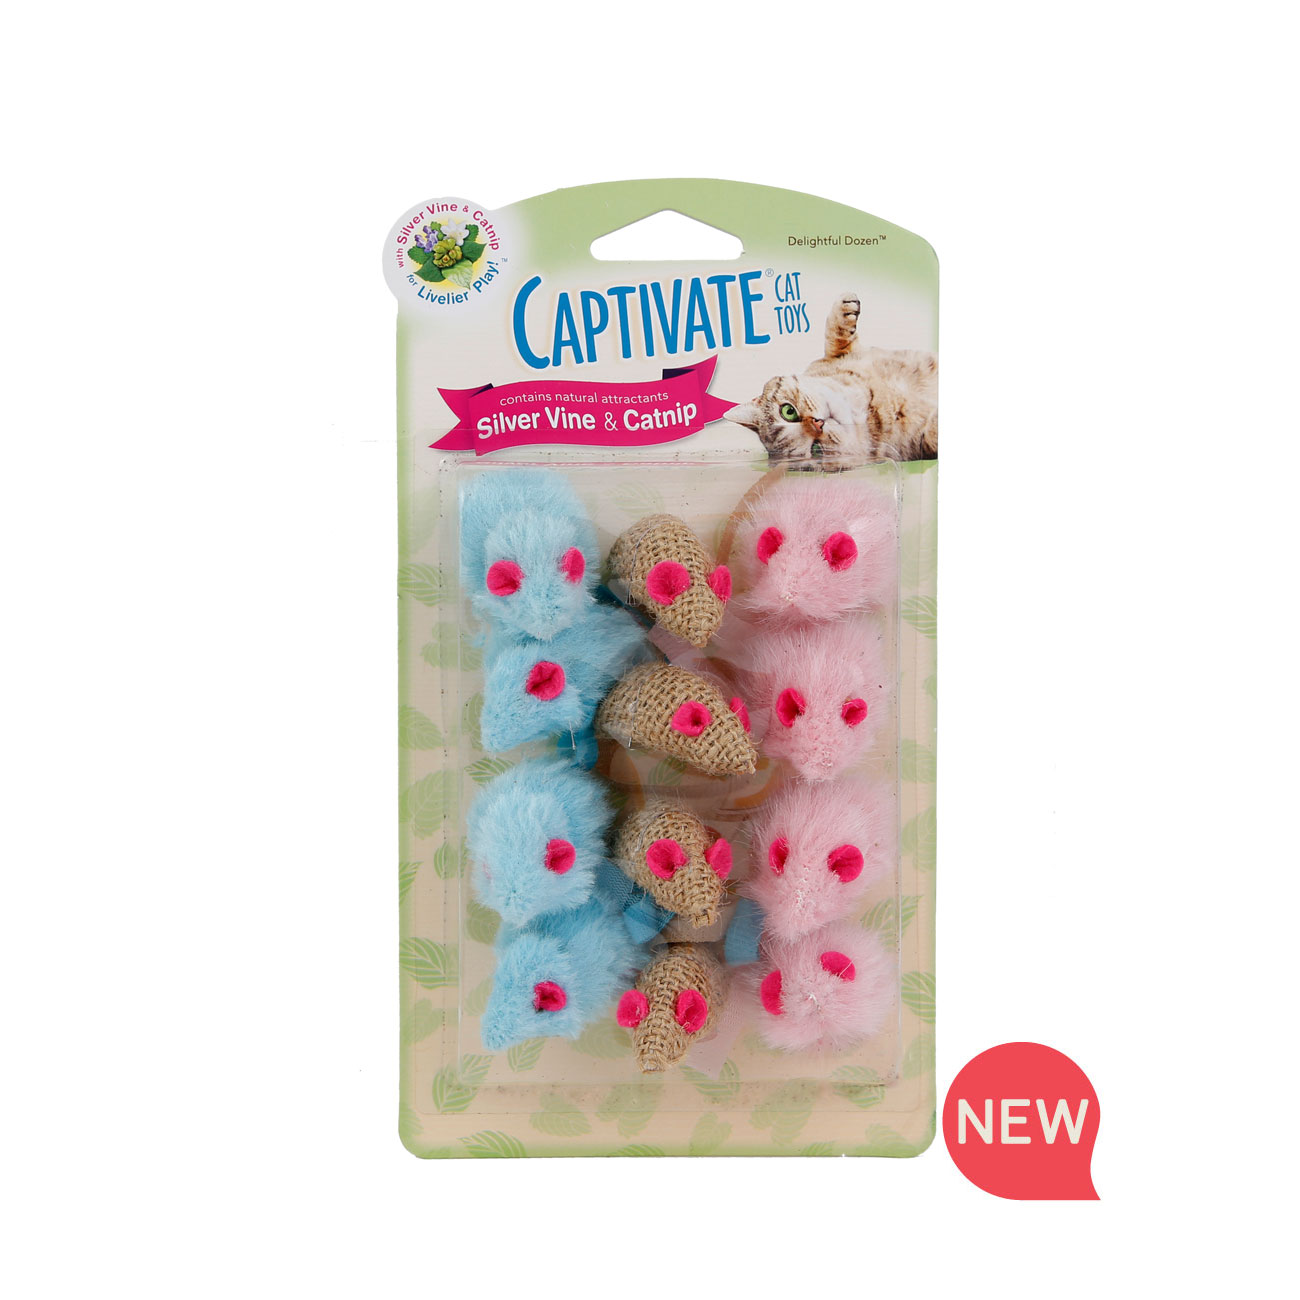 New! Hartz captivate delightful dozen cat toy with silver vine and catnip